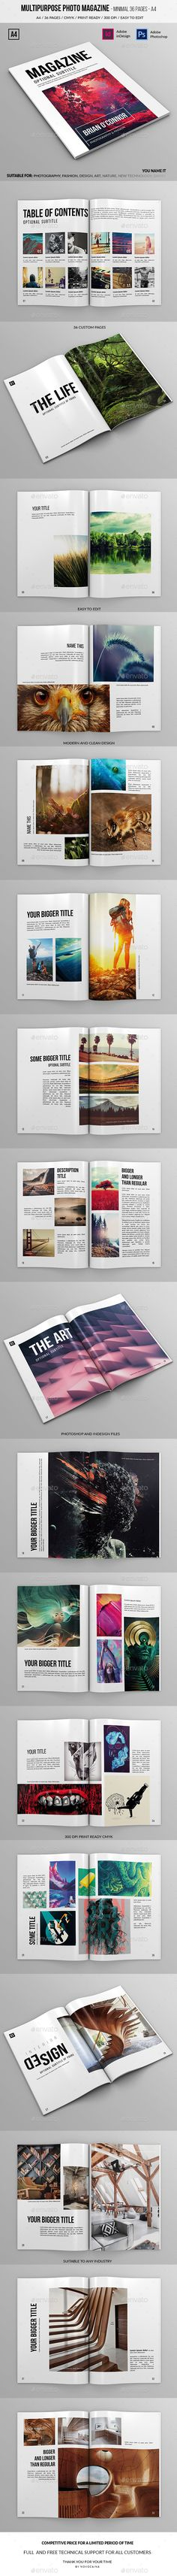 Multipurpose A4 Photo Magazine 36 Pages by Novocaina Professional and clean Photoshop and InDesign magazine template. 36 pages for any content and business you want. The files are pri